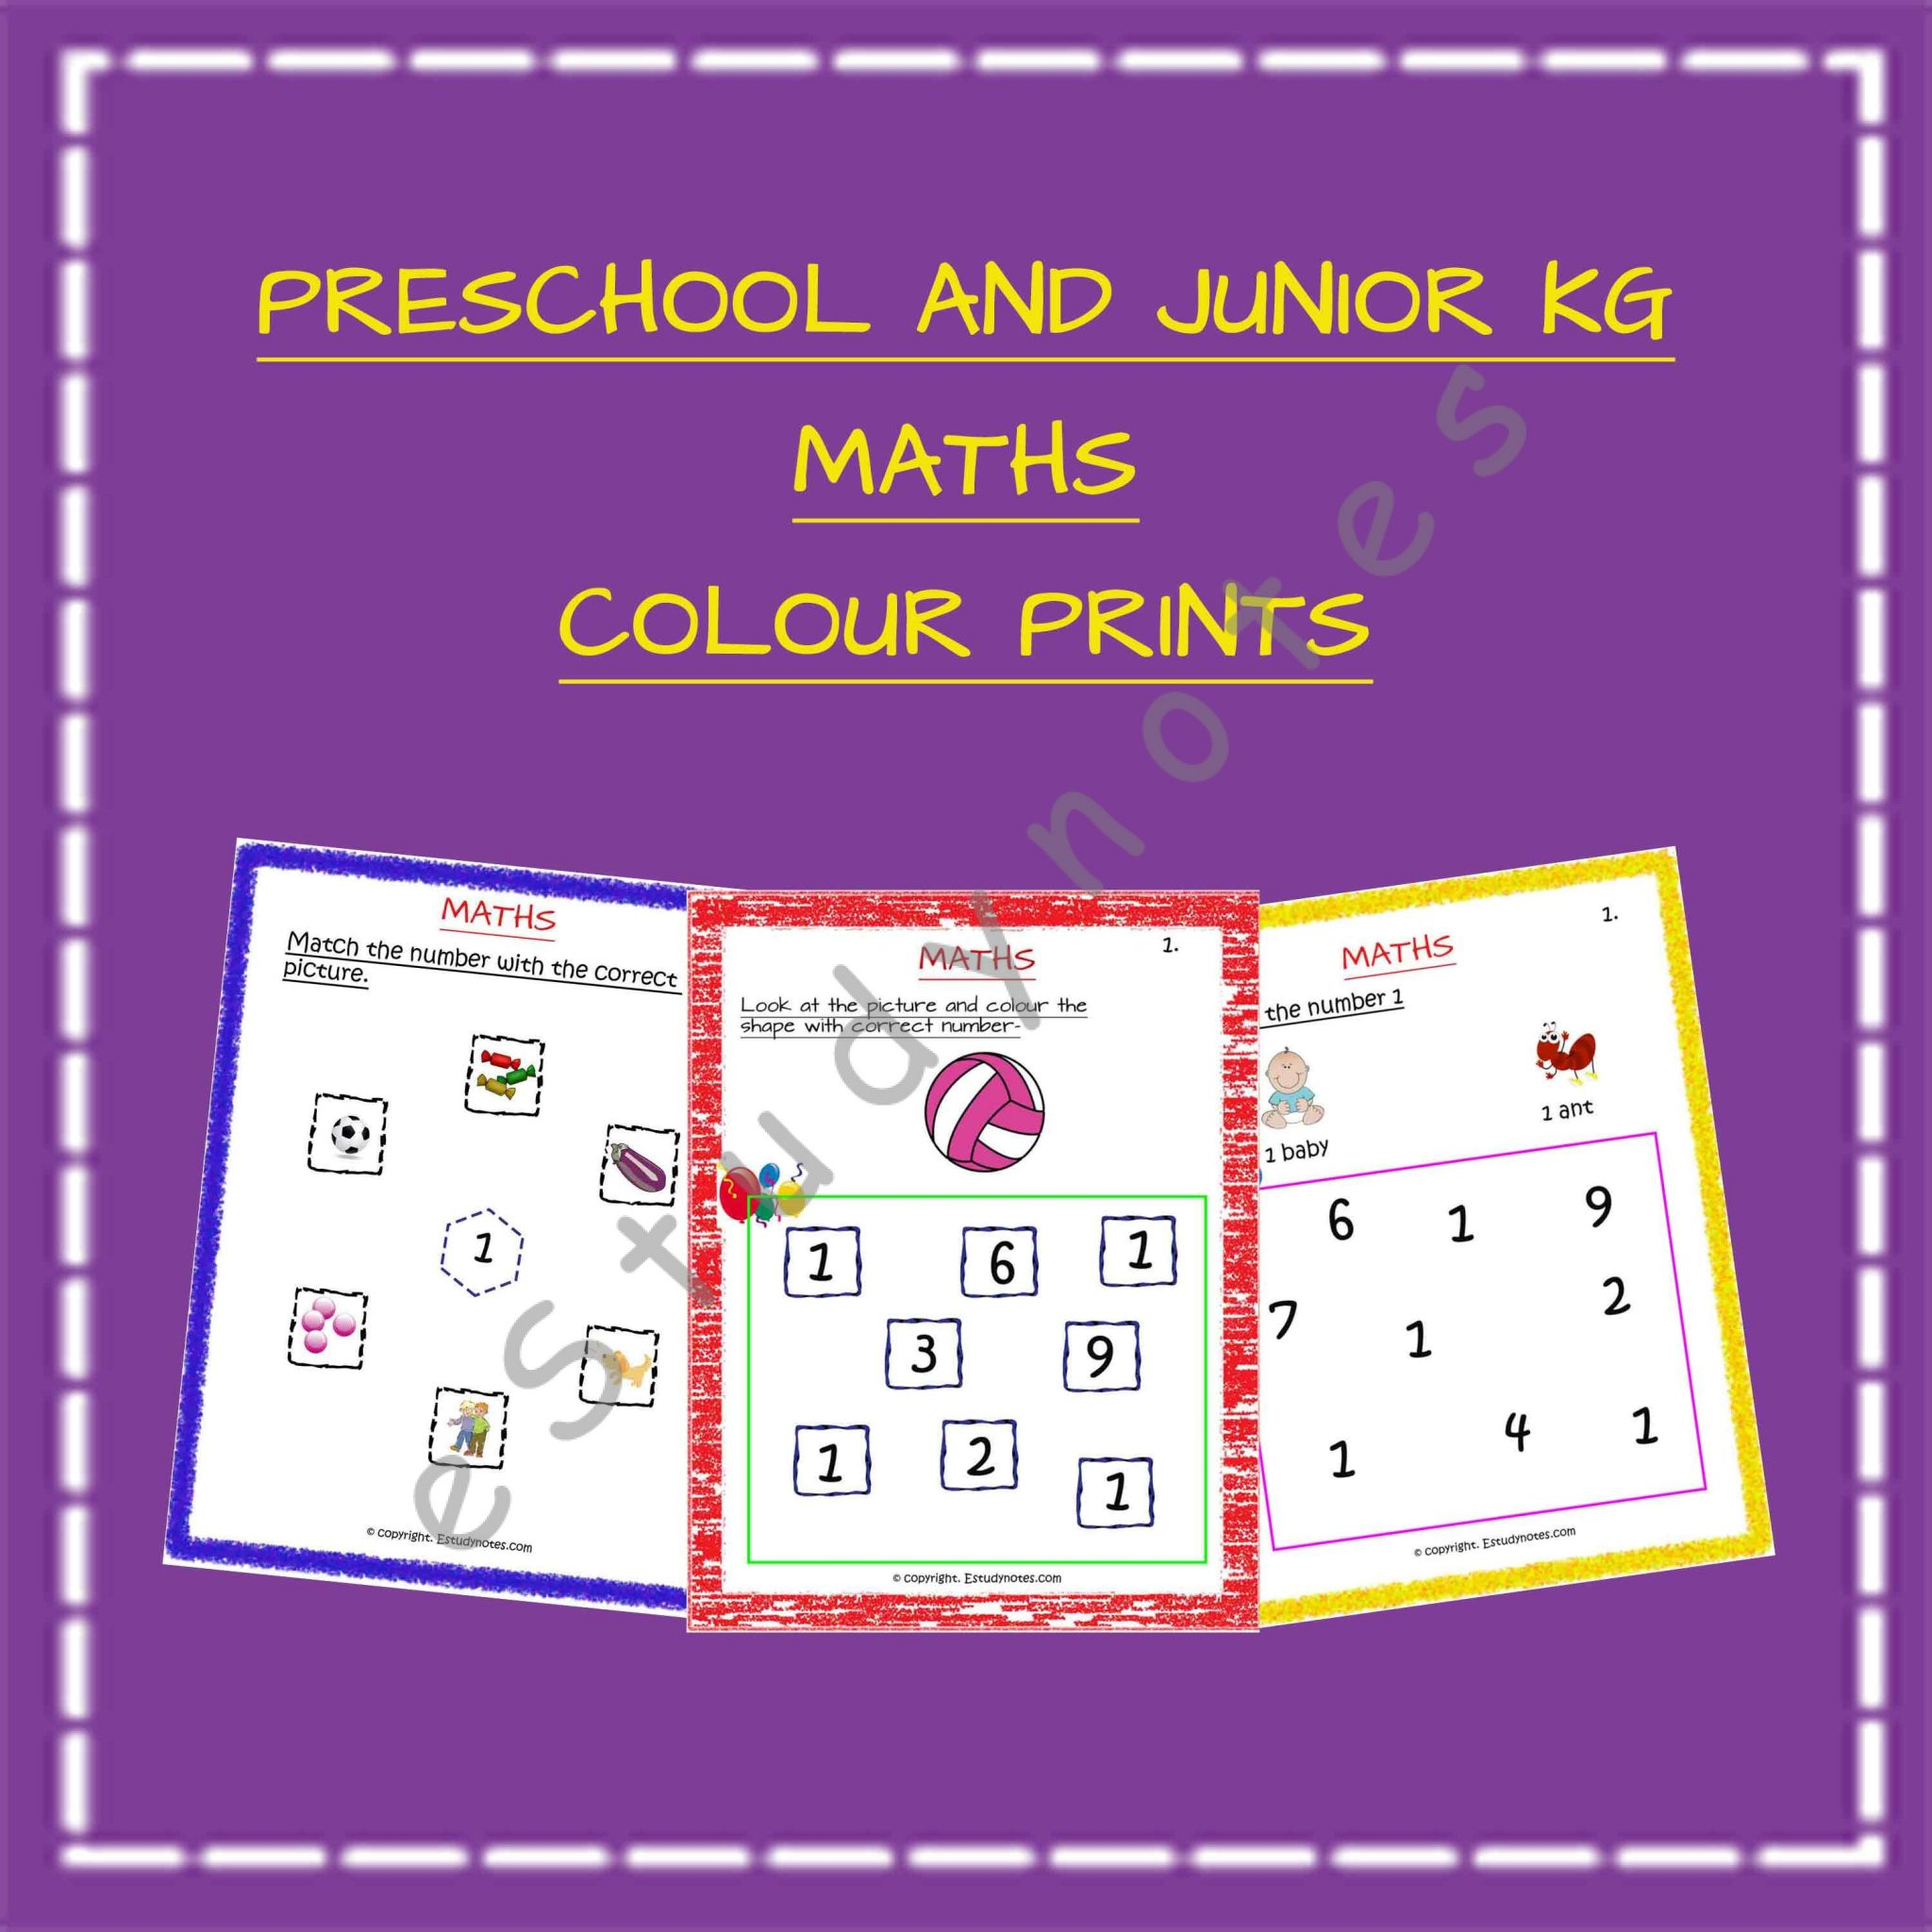 Nursery Amp Jr Kg Maths Worksheets Colour Prints 66